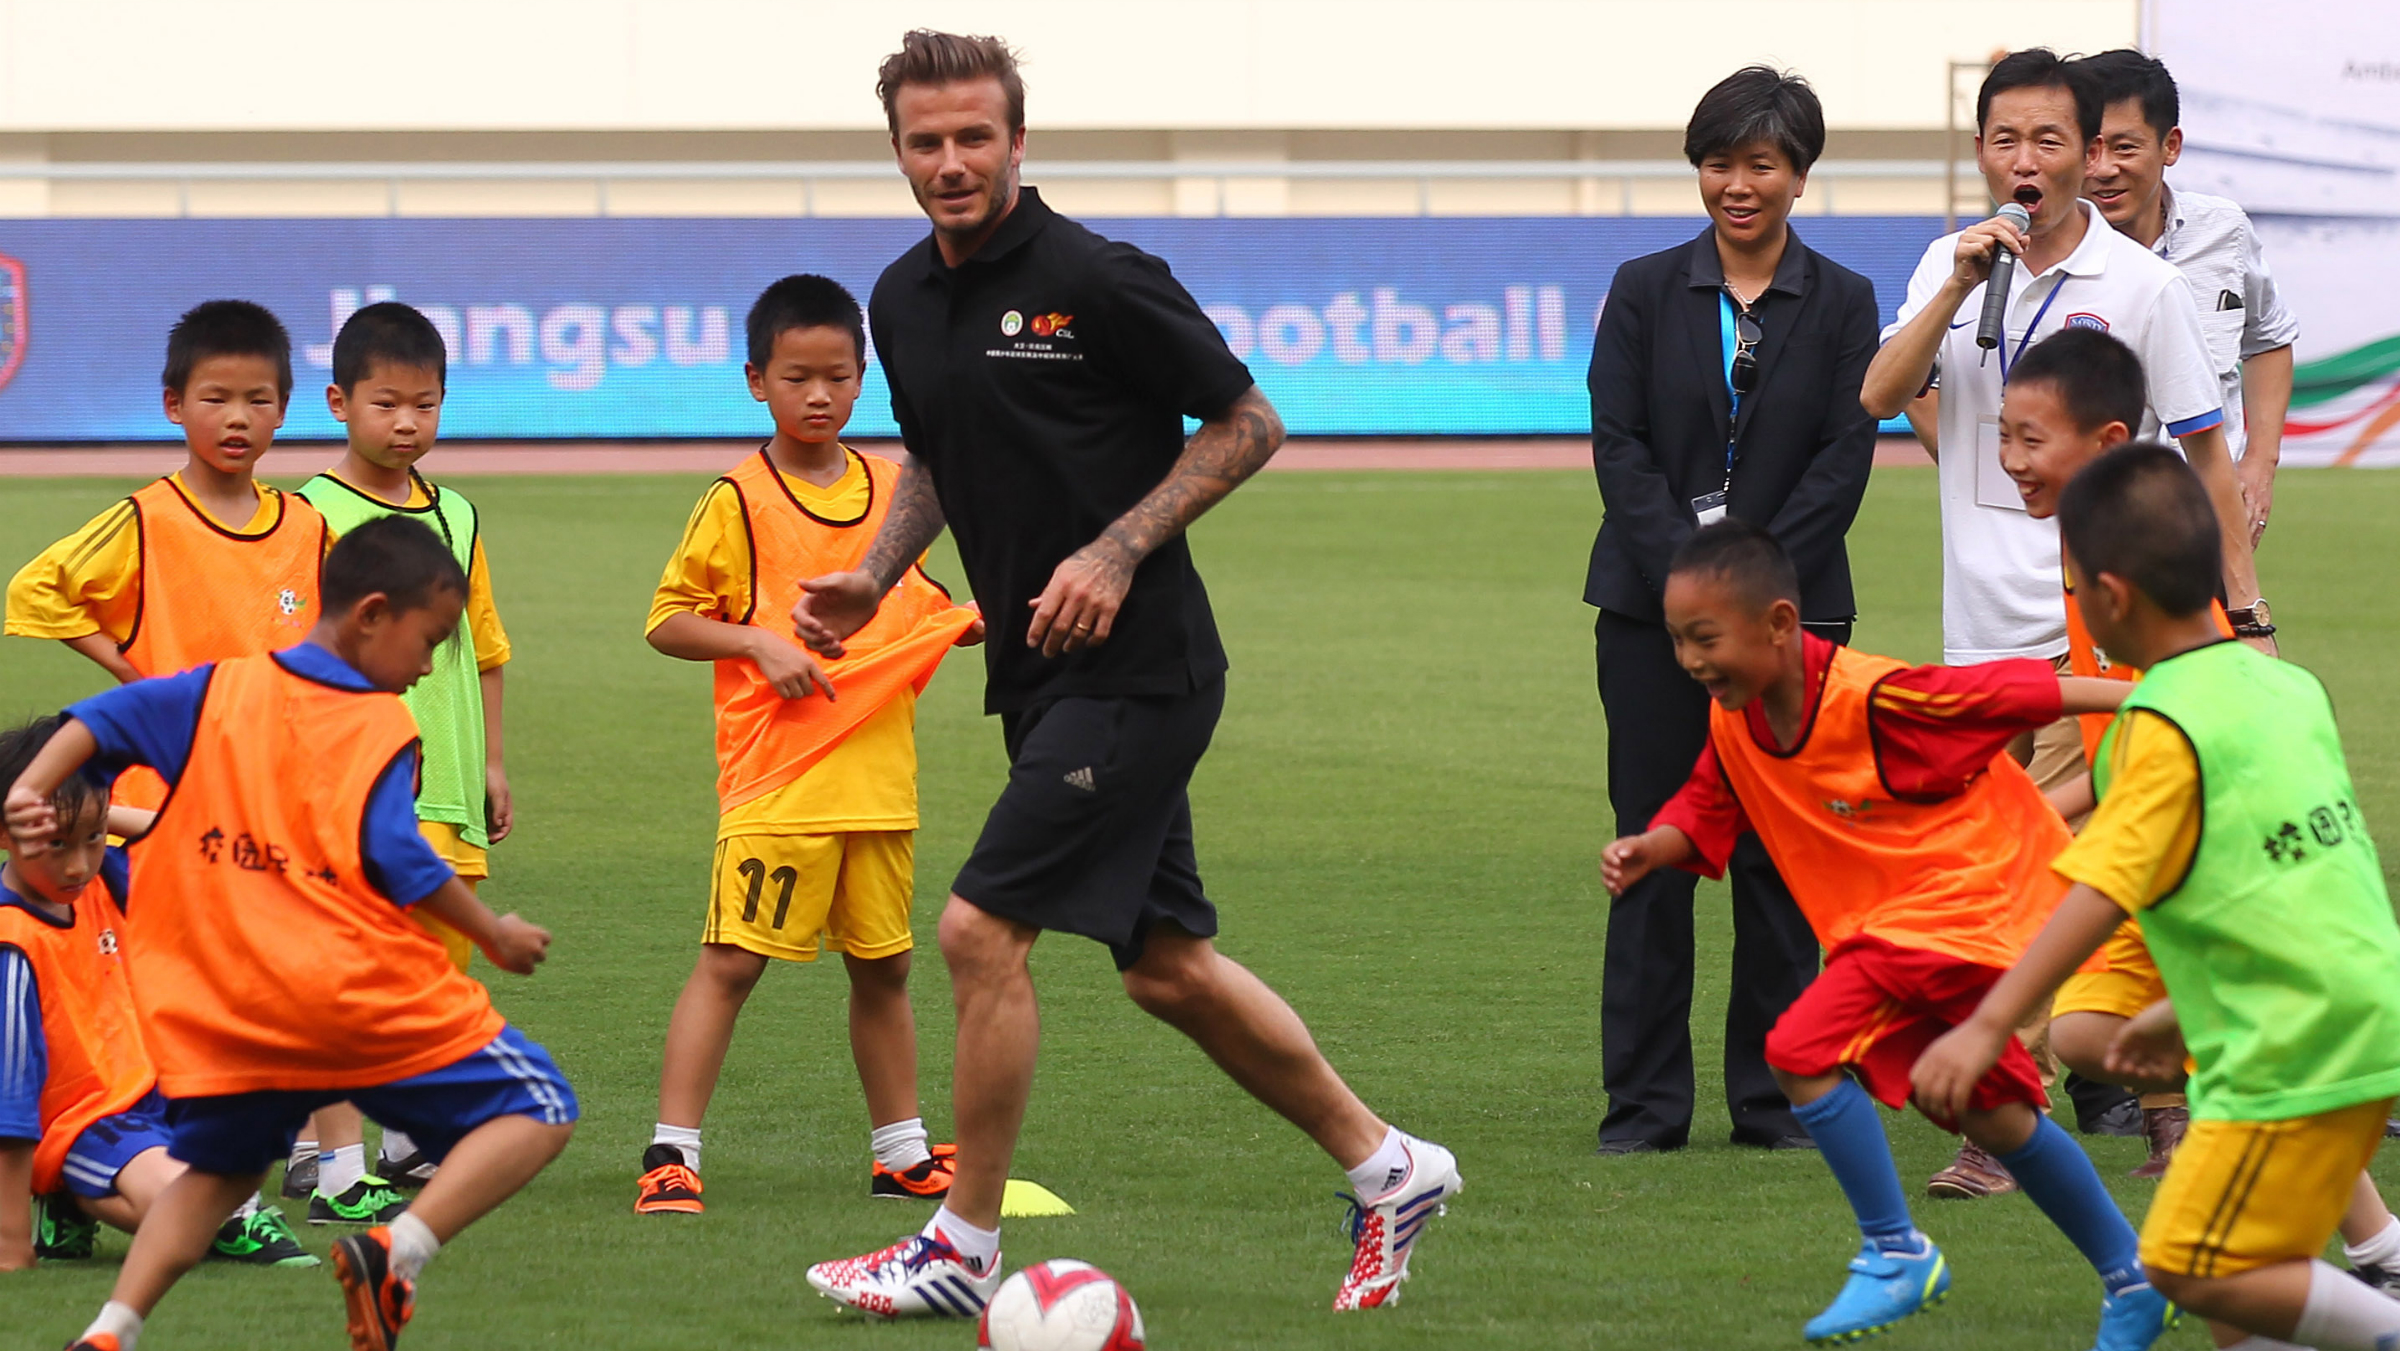 Former England captain David Beckham plays soccer with primary school students at the Olympic Sports Center in Nanjing in east China's Jiangsu province on Tuesday, June 18, 2013. Beckham is on a 7-day visit in China as ambassador to Chinese Super League.(Photo By Yang Bo/Color China Photo/AP Images